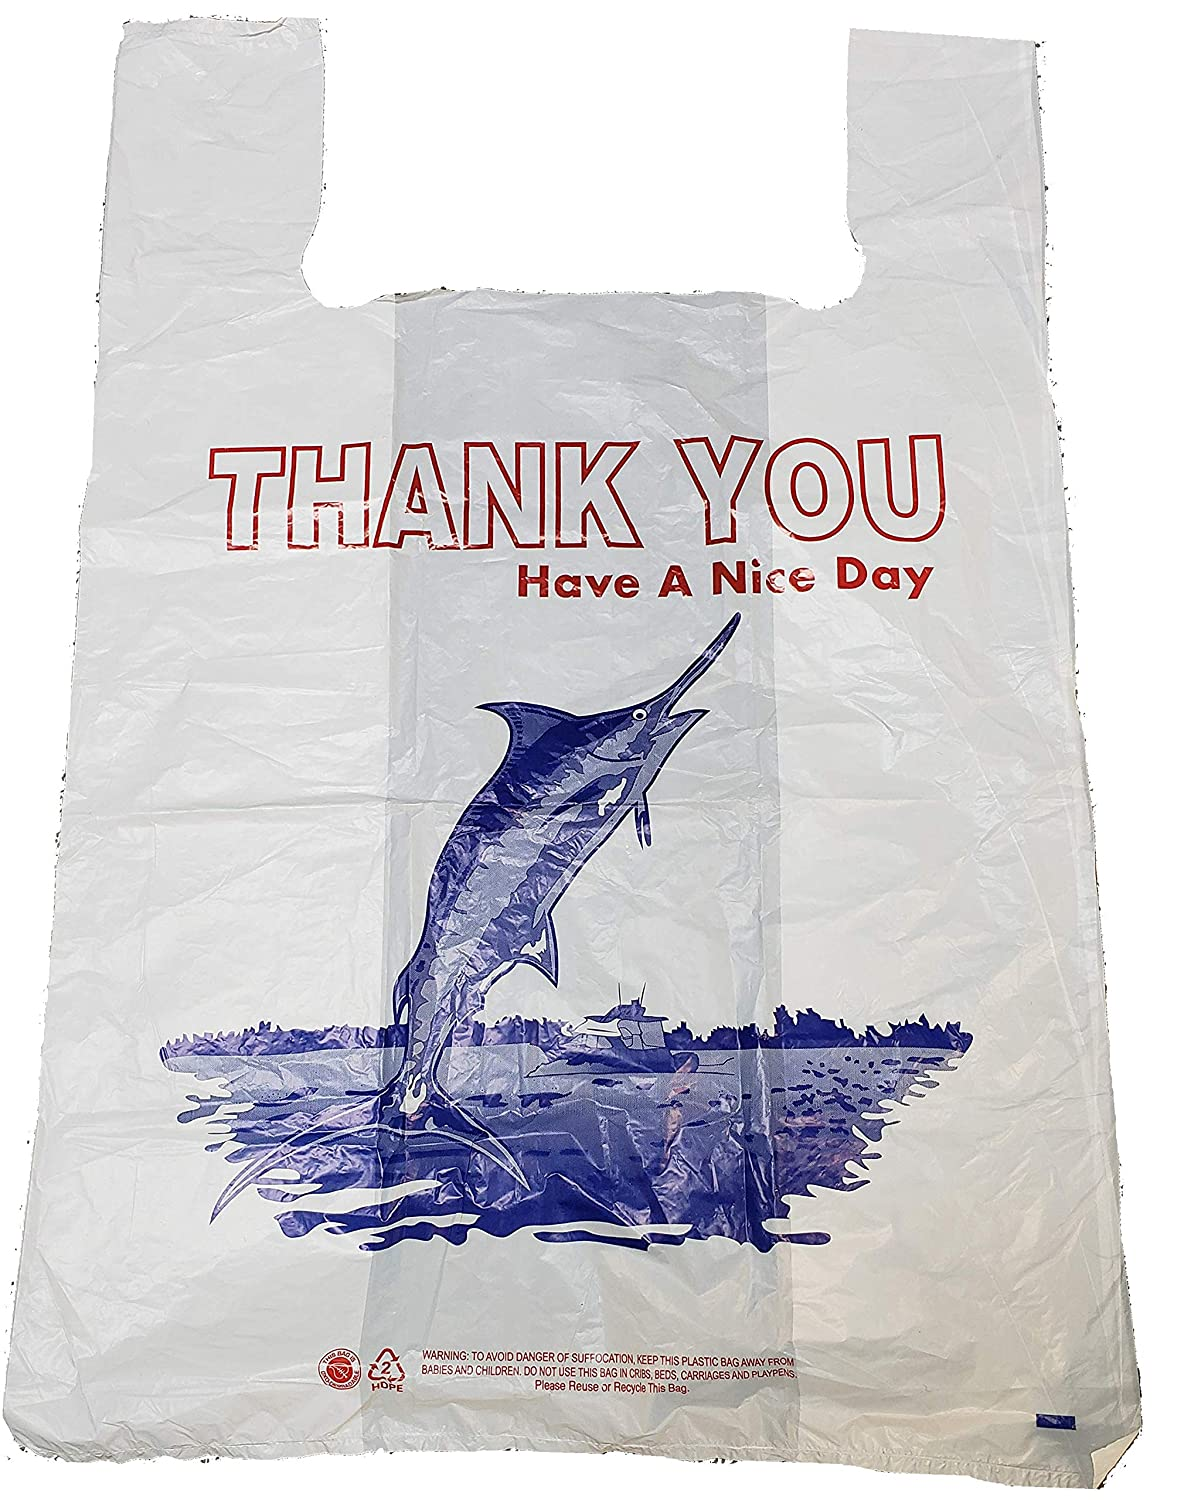 White Marlin Thank-you T-shirt Biodegradable Shopping Bags (11.5x6x21 -14 Mic) - 500 Bags by JS Collections B00PYSX88Y